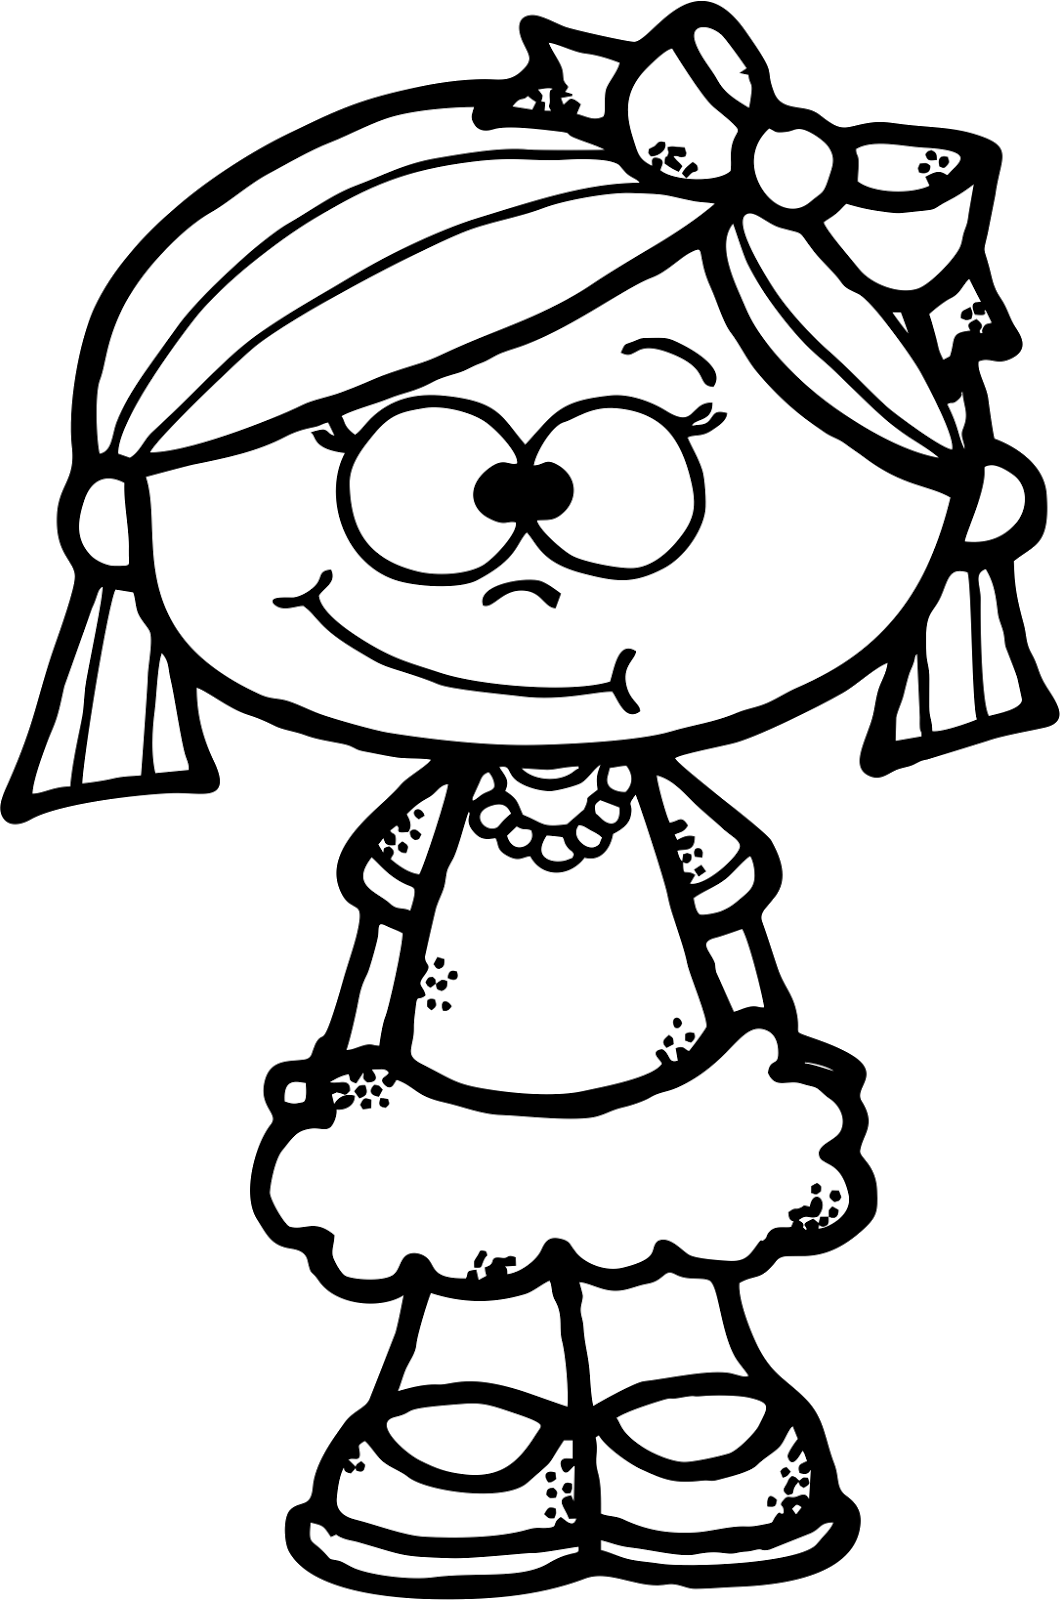 Quilt clipart sketch. Worksheetjunkie cute girl freebie